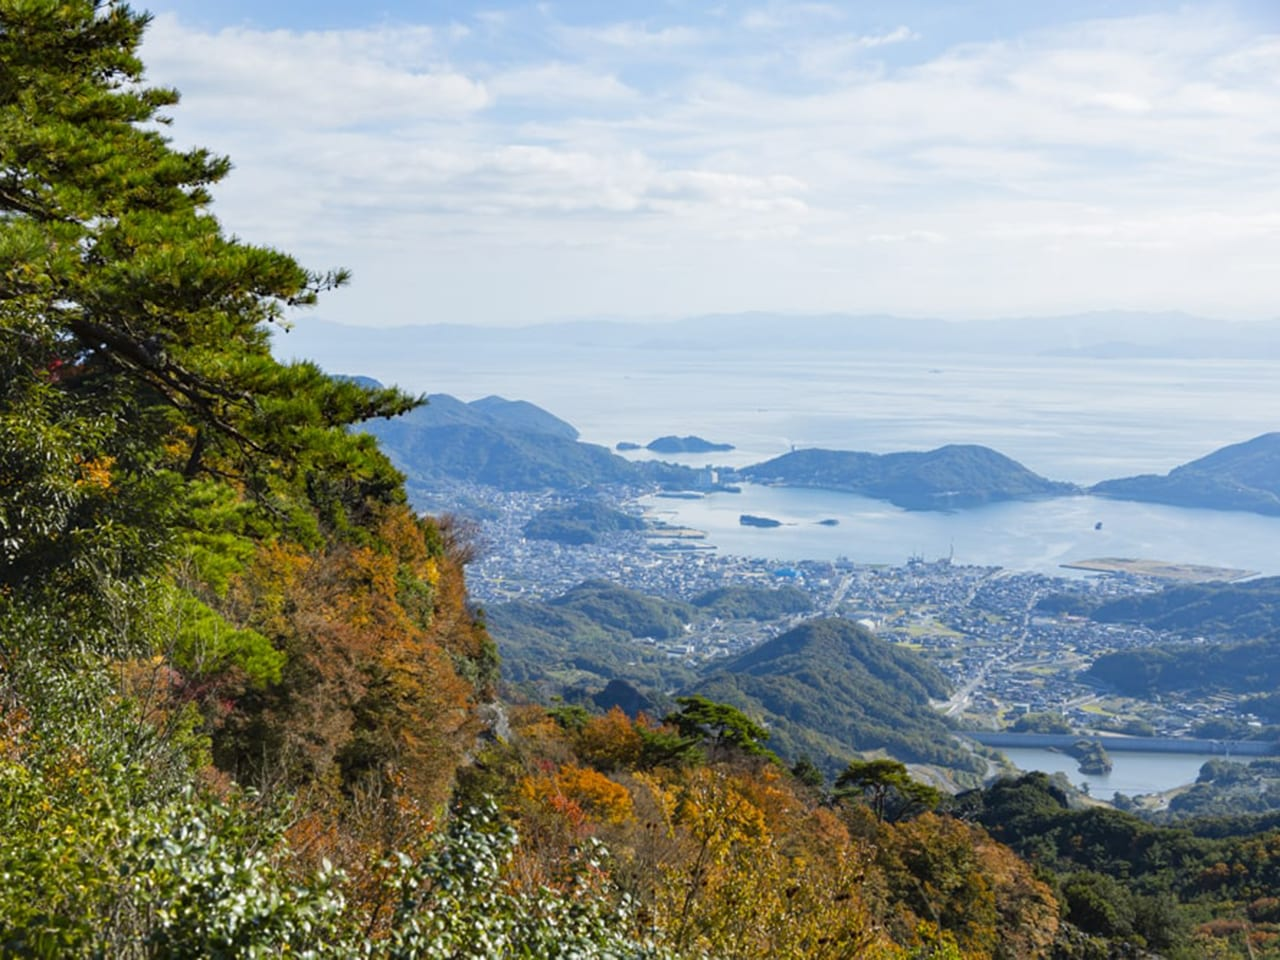 The first Gotokan appeared on Shodoshima, a popular place for foreigners at the Setouchi International Art Festival!Shimanoca Co., Ltd.